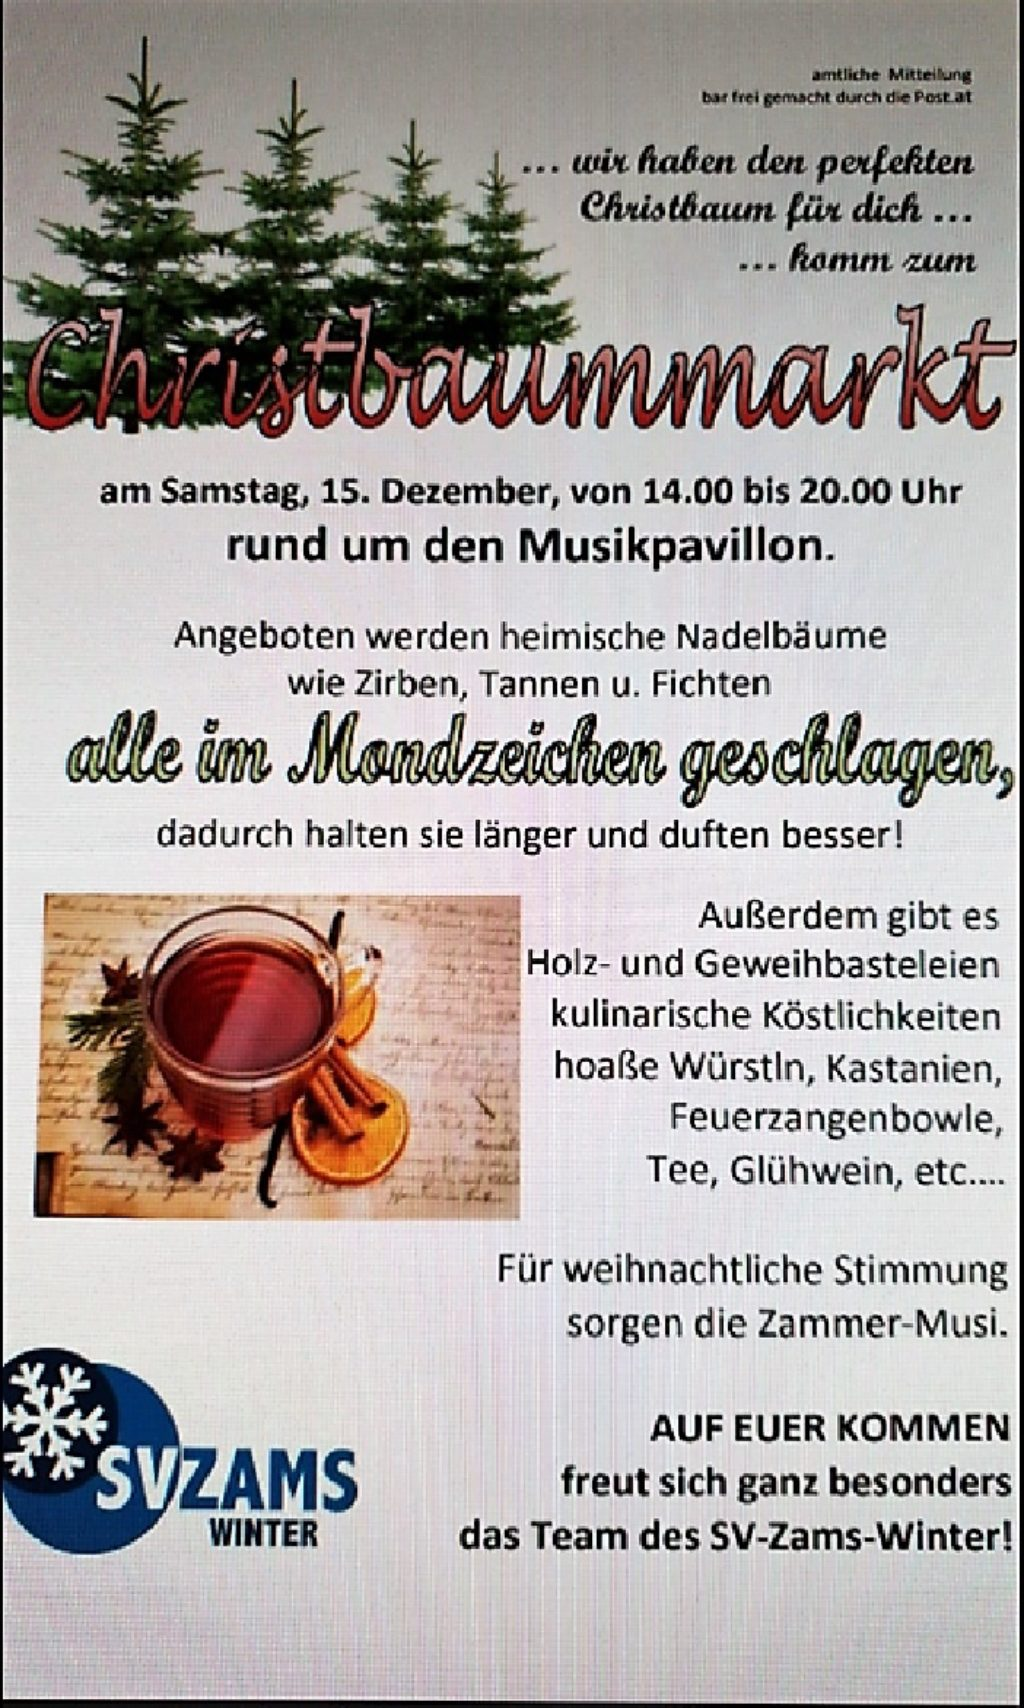 Christbaummarkt